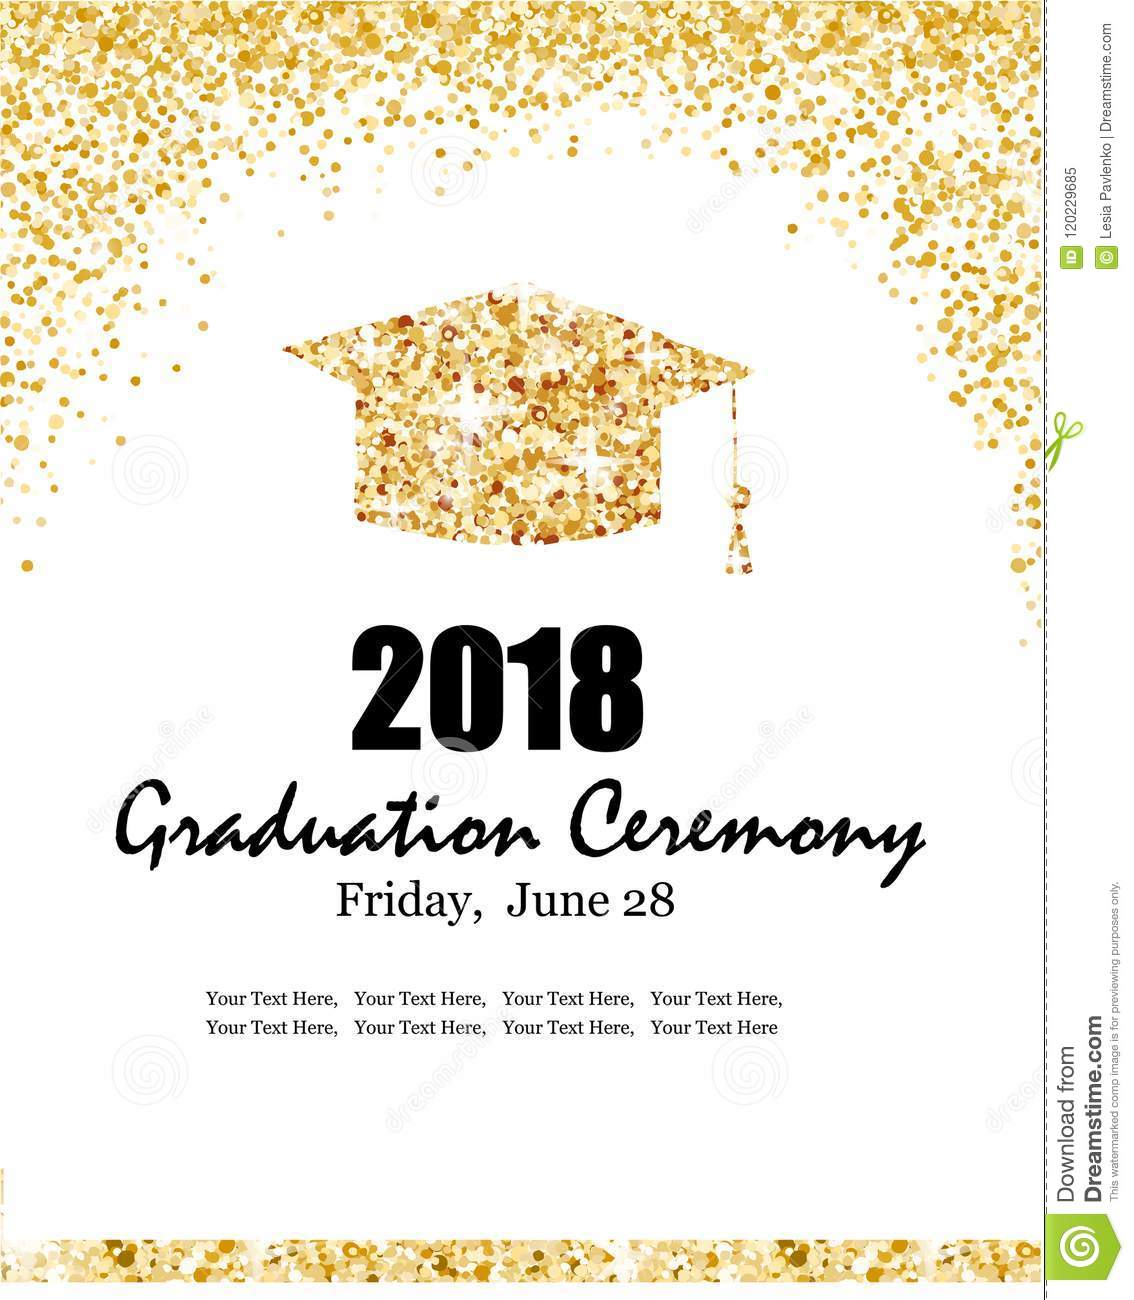 Class Of 2018 Graduation Ceremony Banner Stock Vector